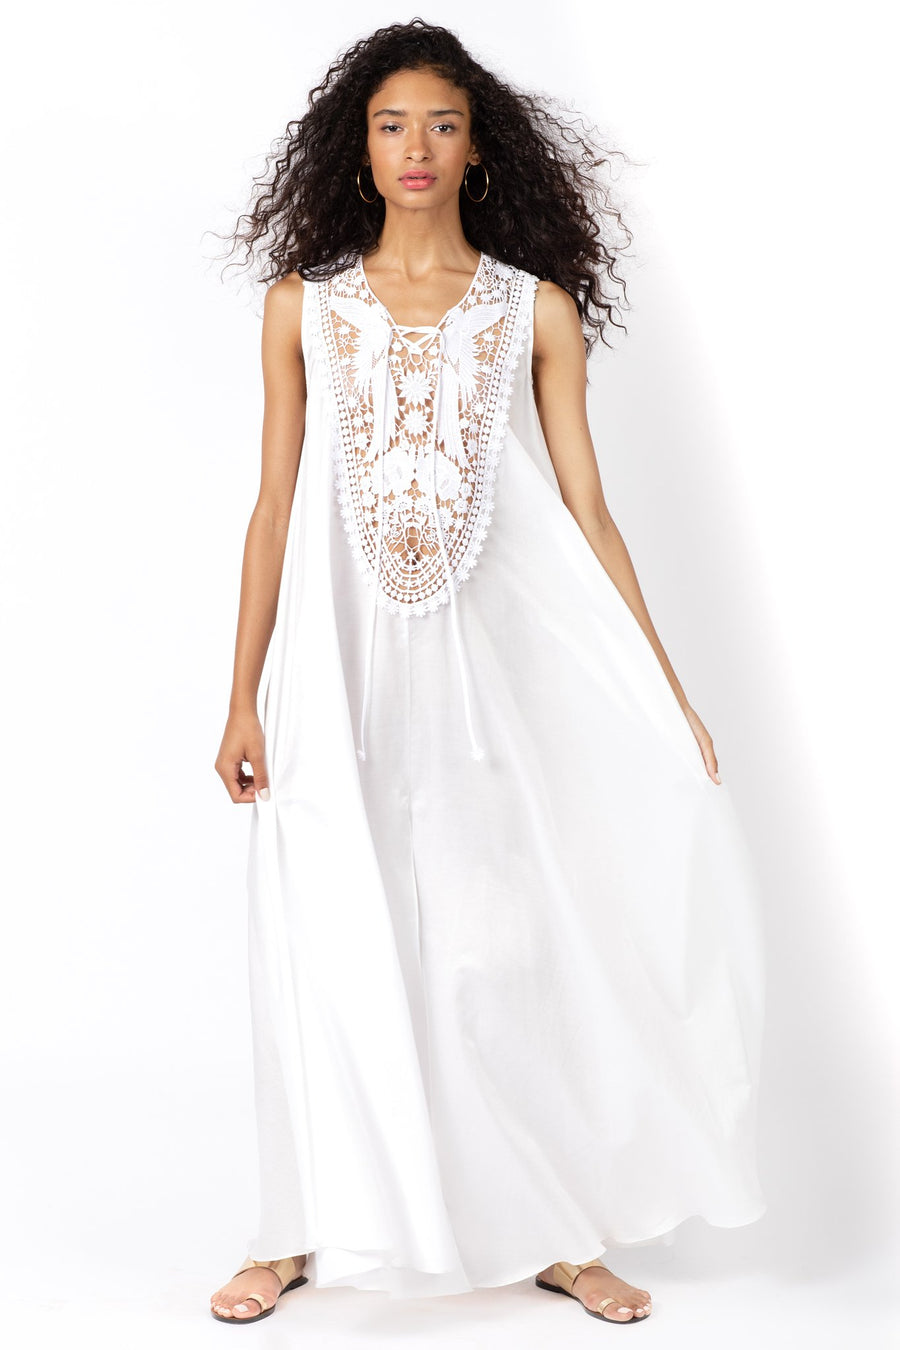 This is a photo of a woman wearing a floor length, pure white, kaftan dress. The dress features a large, embroidered yolk at the center front neckline, which depicts two birds surrounded by flowers.